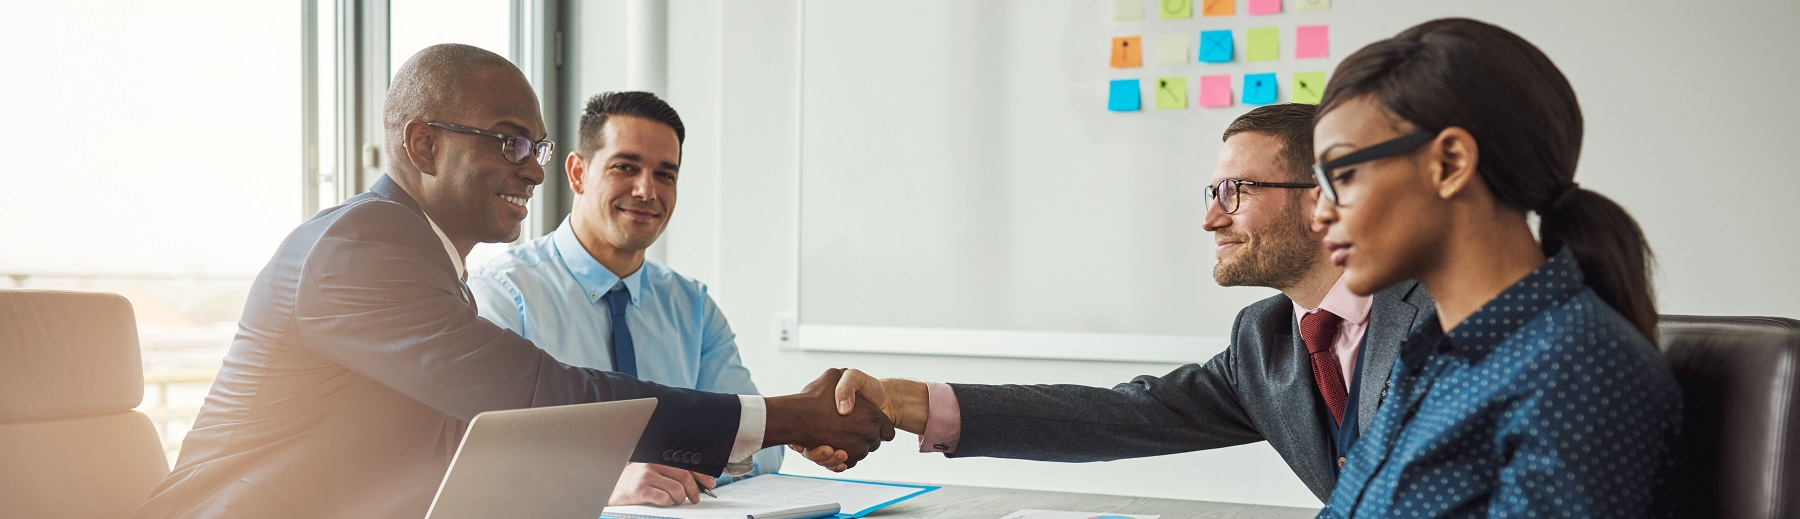 Business people shake hands over a conference table